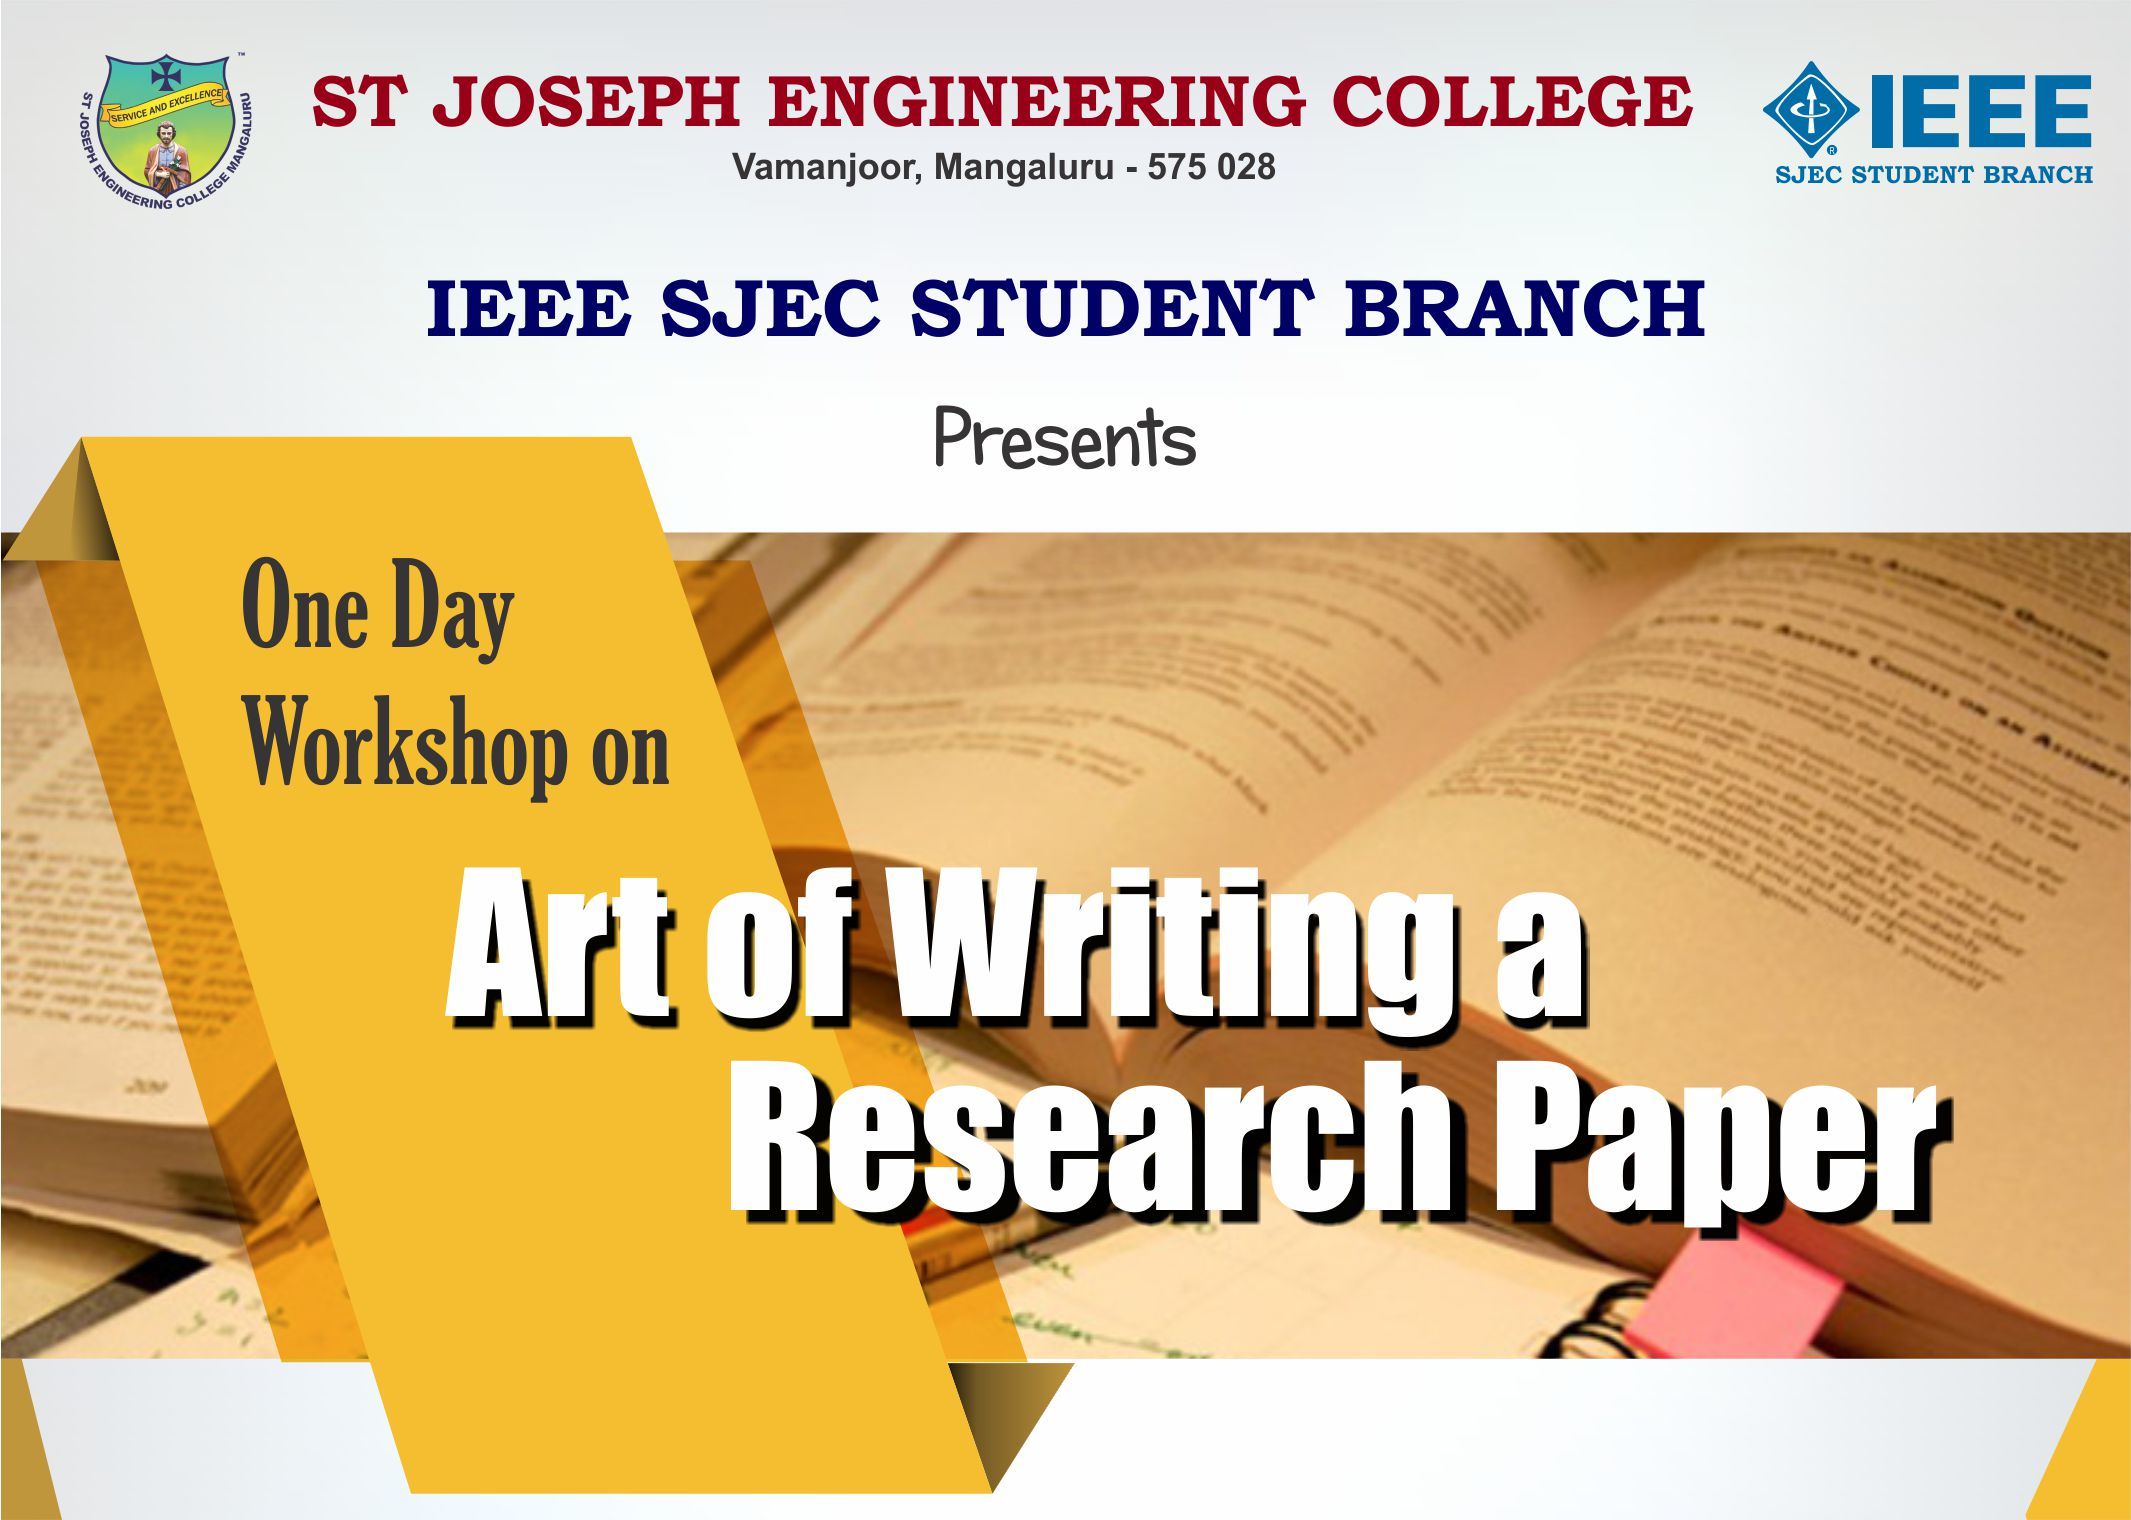 005 Research Paper About Writing Workshop Rare Skills Ppt Topics For College Articles On Creative Full